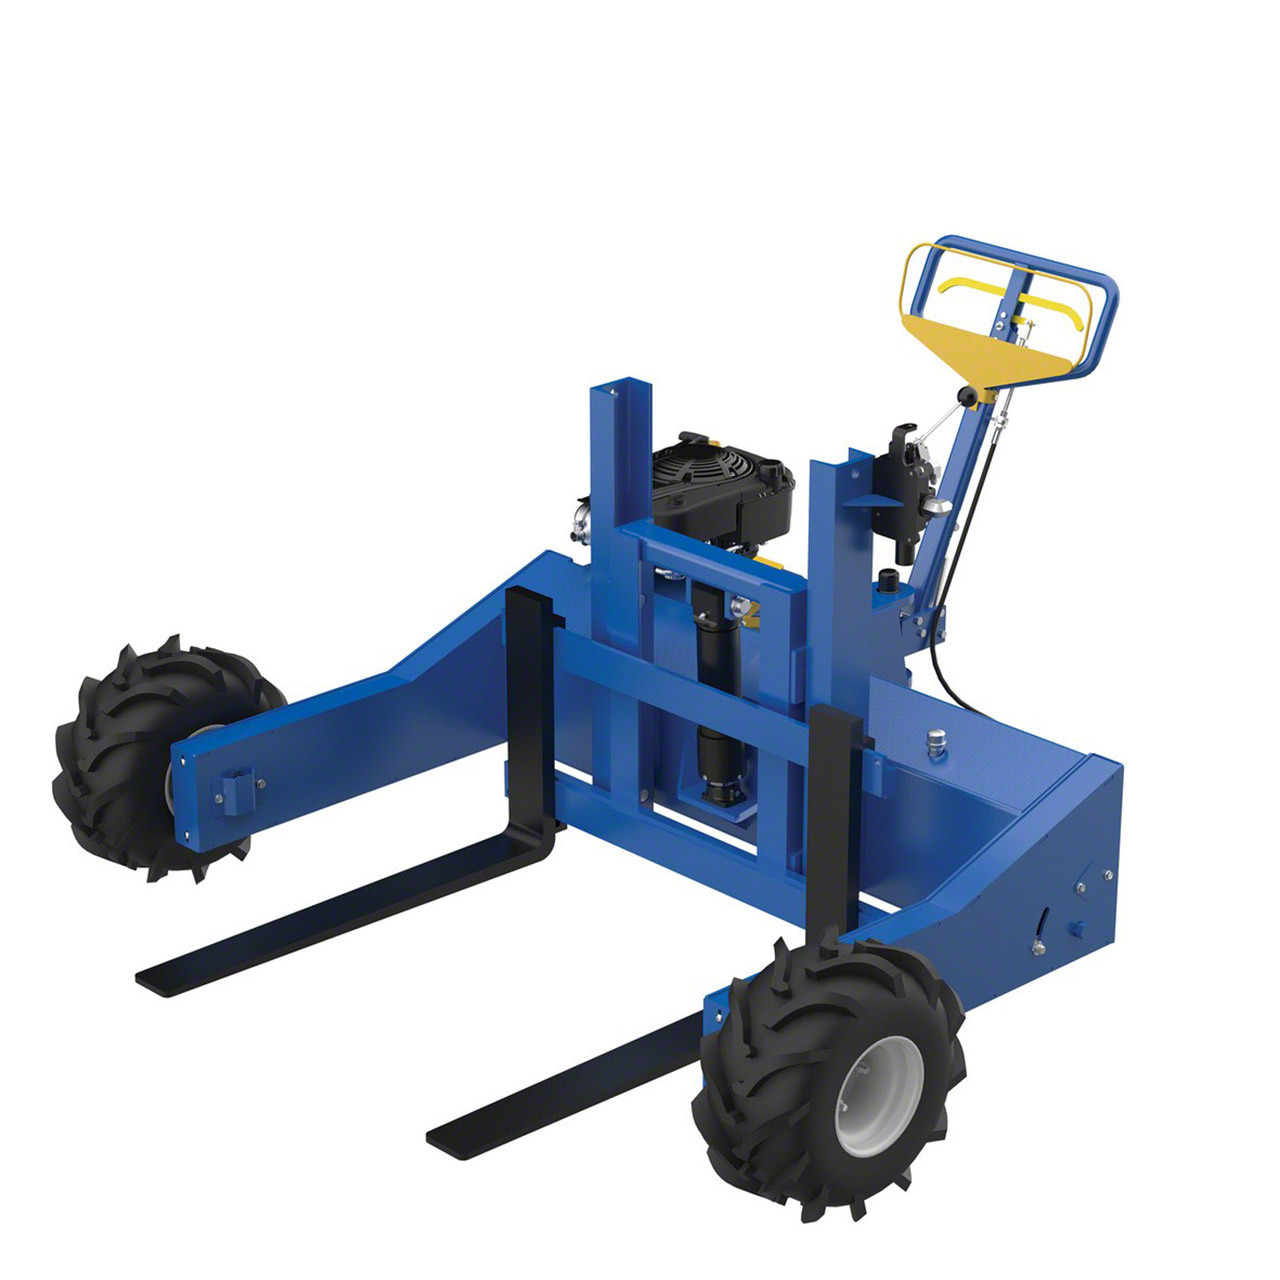 Side view of Vestil's all terrain pallet jack